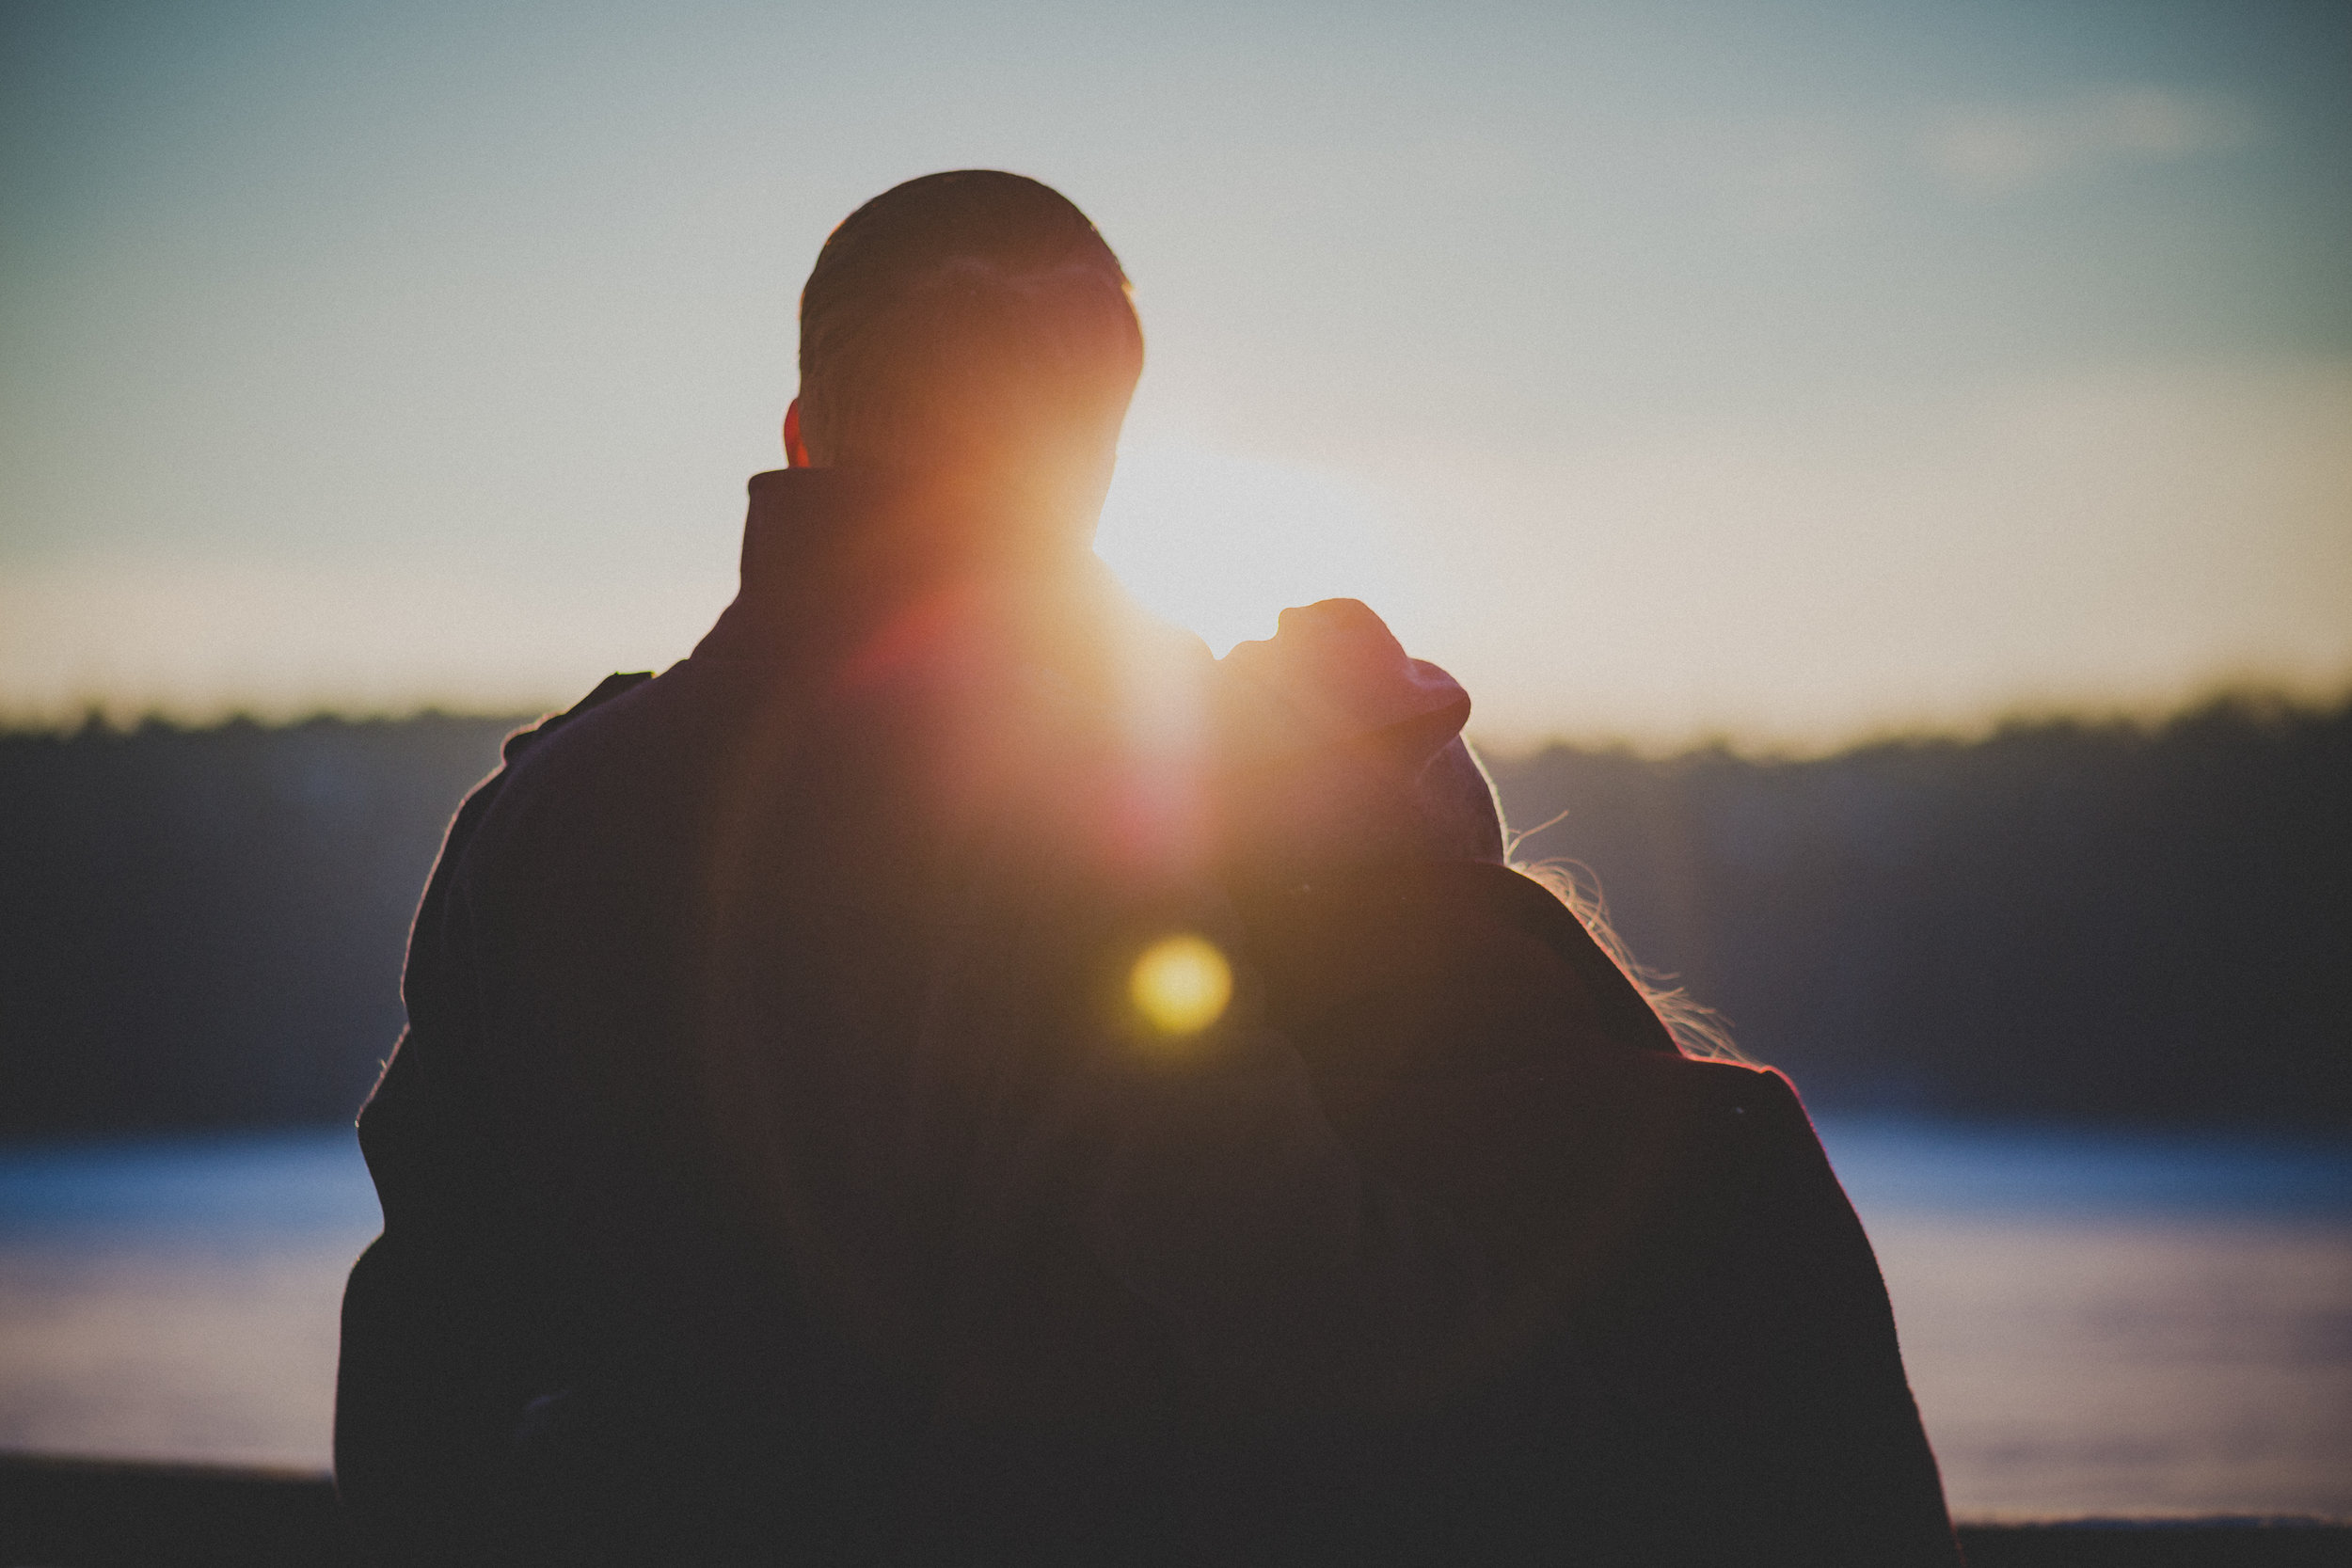 Couples counseling can help you and your partner to improve communication, connect emotionally, and rediscover the reasons that you fell in love. Affirmative of all couples.